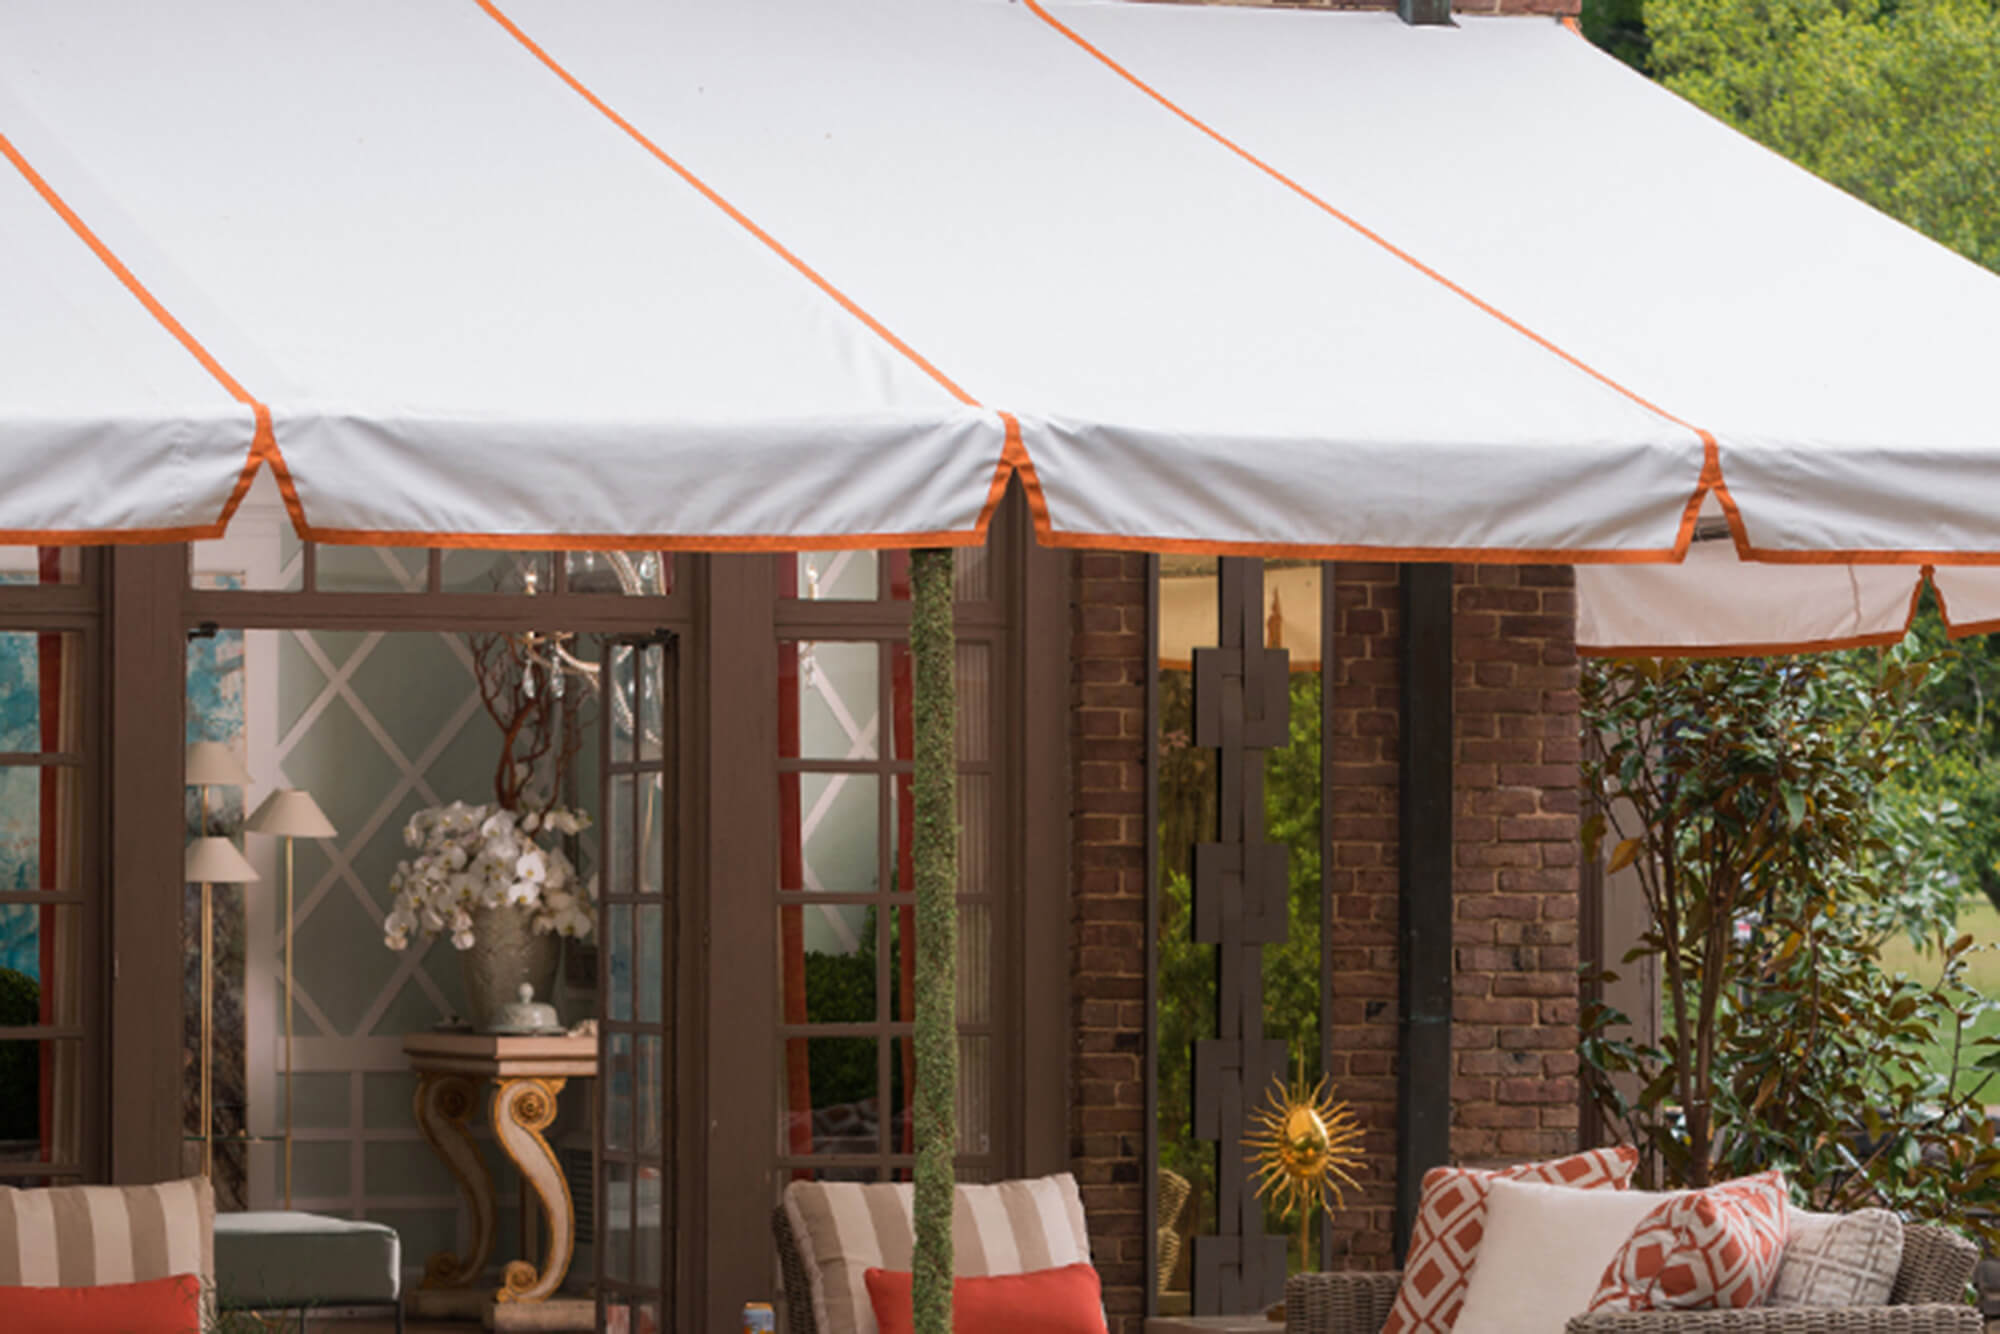 A Patio Is Shaded By Fixed Frame Awning With White Sunbrella Fabric And Orange Trim